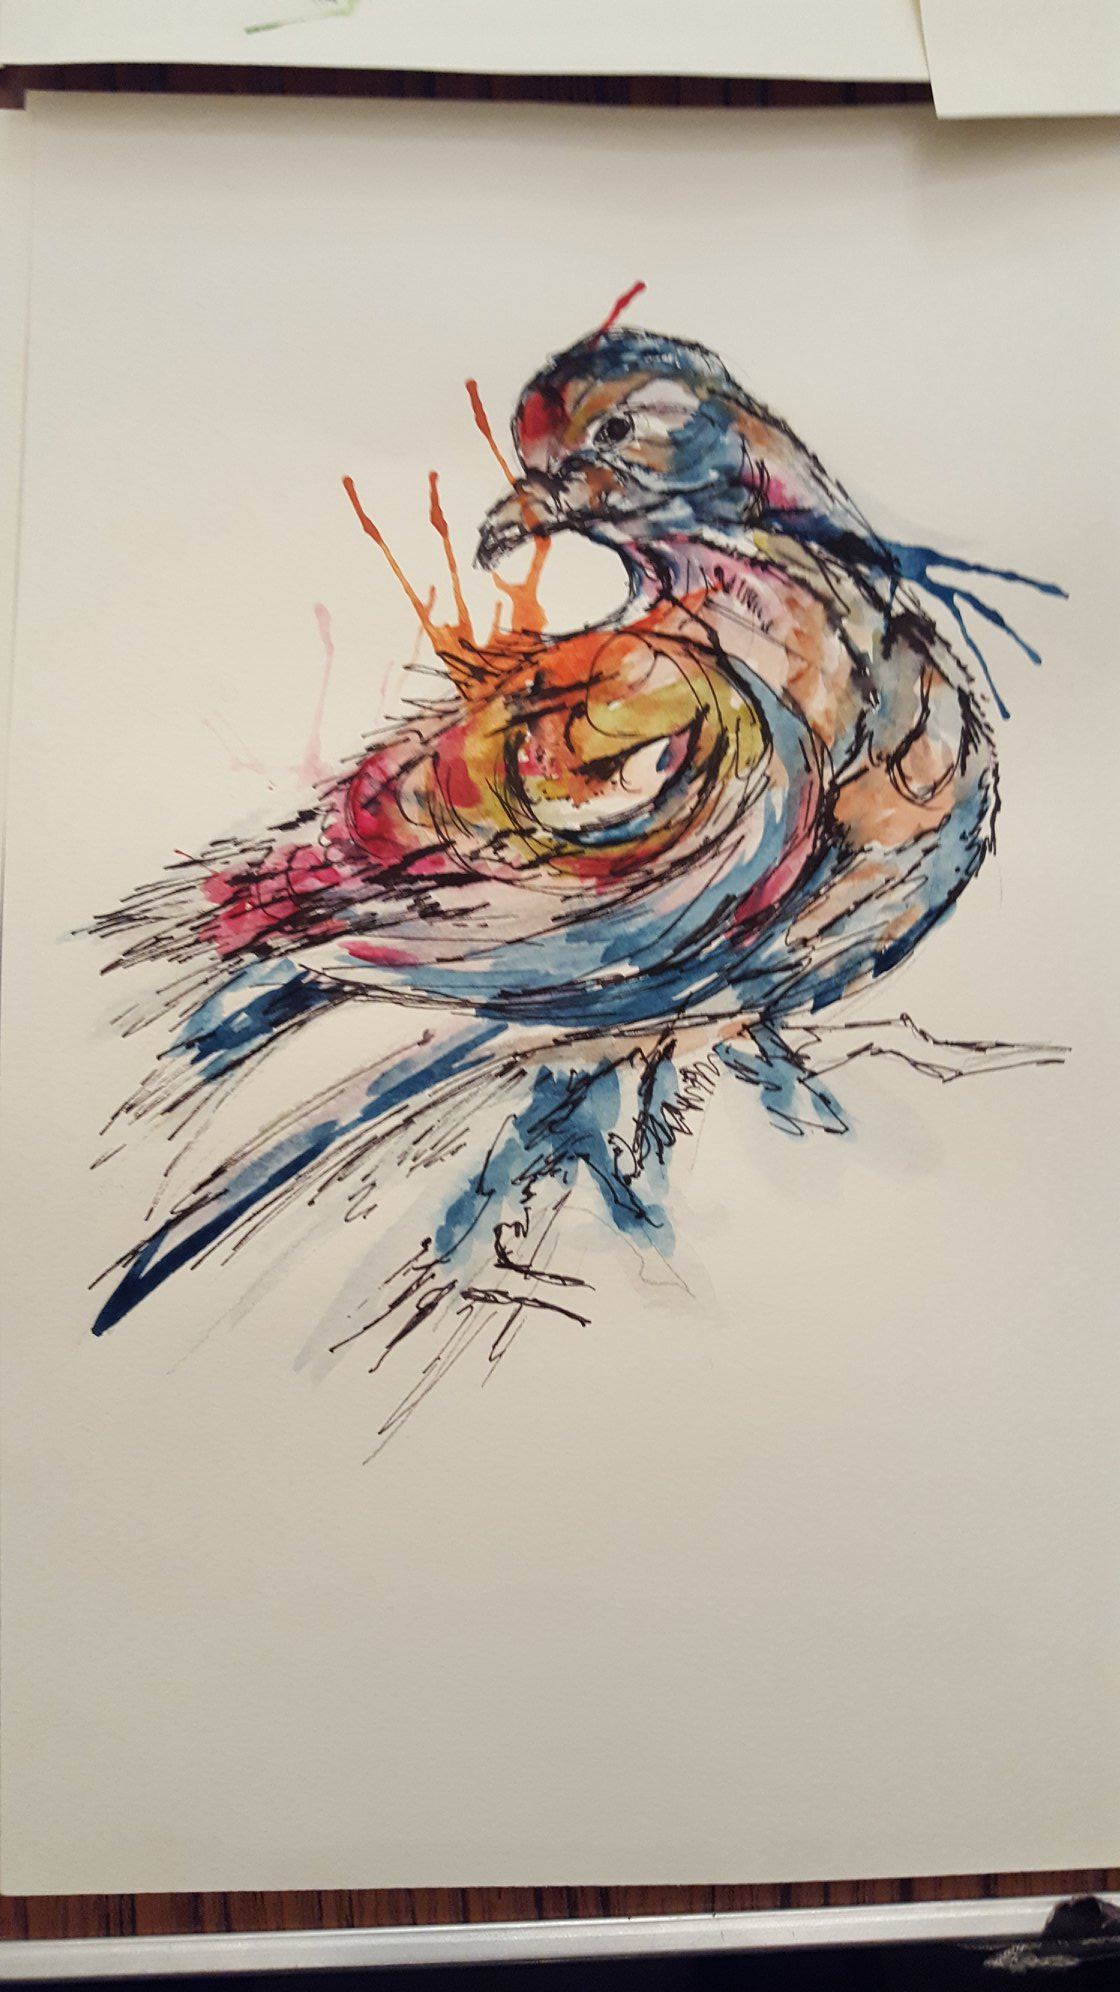 Pen and paint drawing of a bird